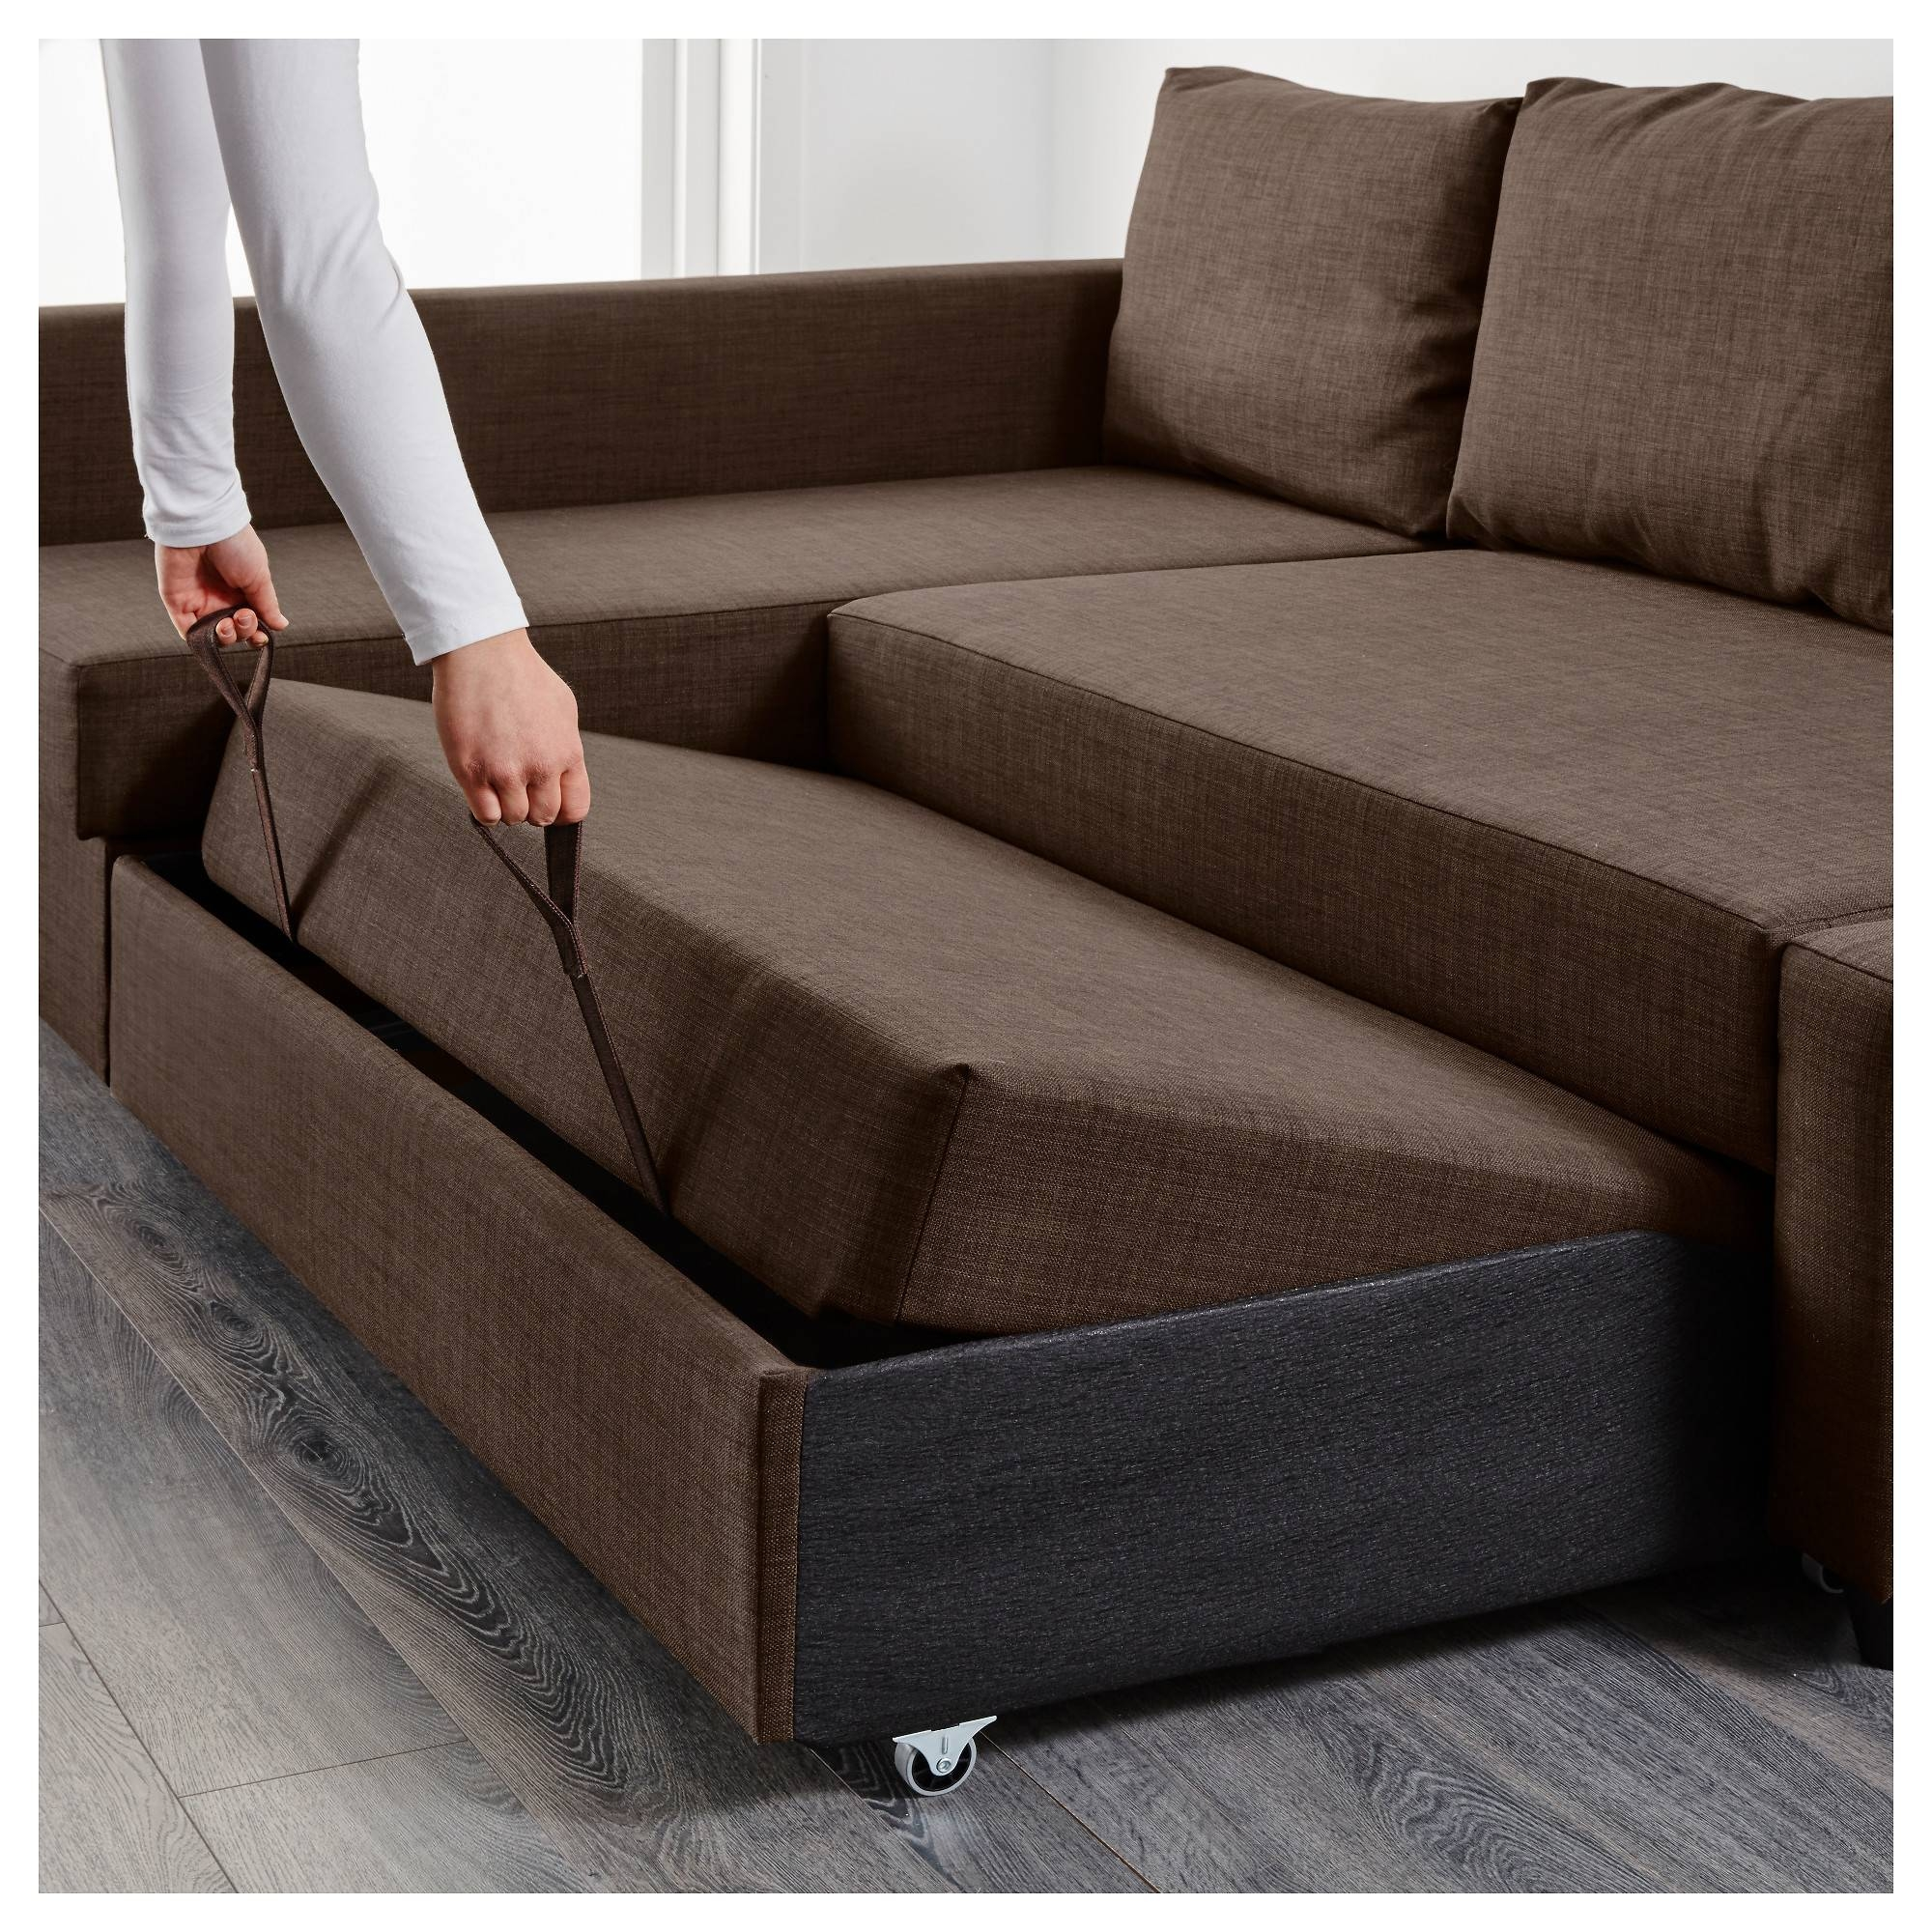 Friheten Corner Sofa-Bed With Storage - Skiftebo Dark Gray - Ikea with Ikea Corner Sofa Bed With Storage (Image 2 of 25)